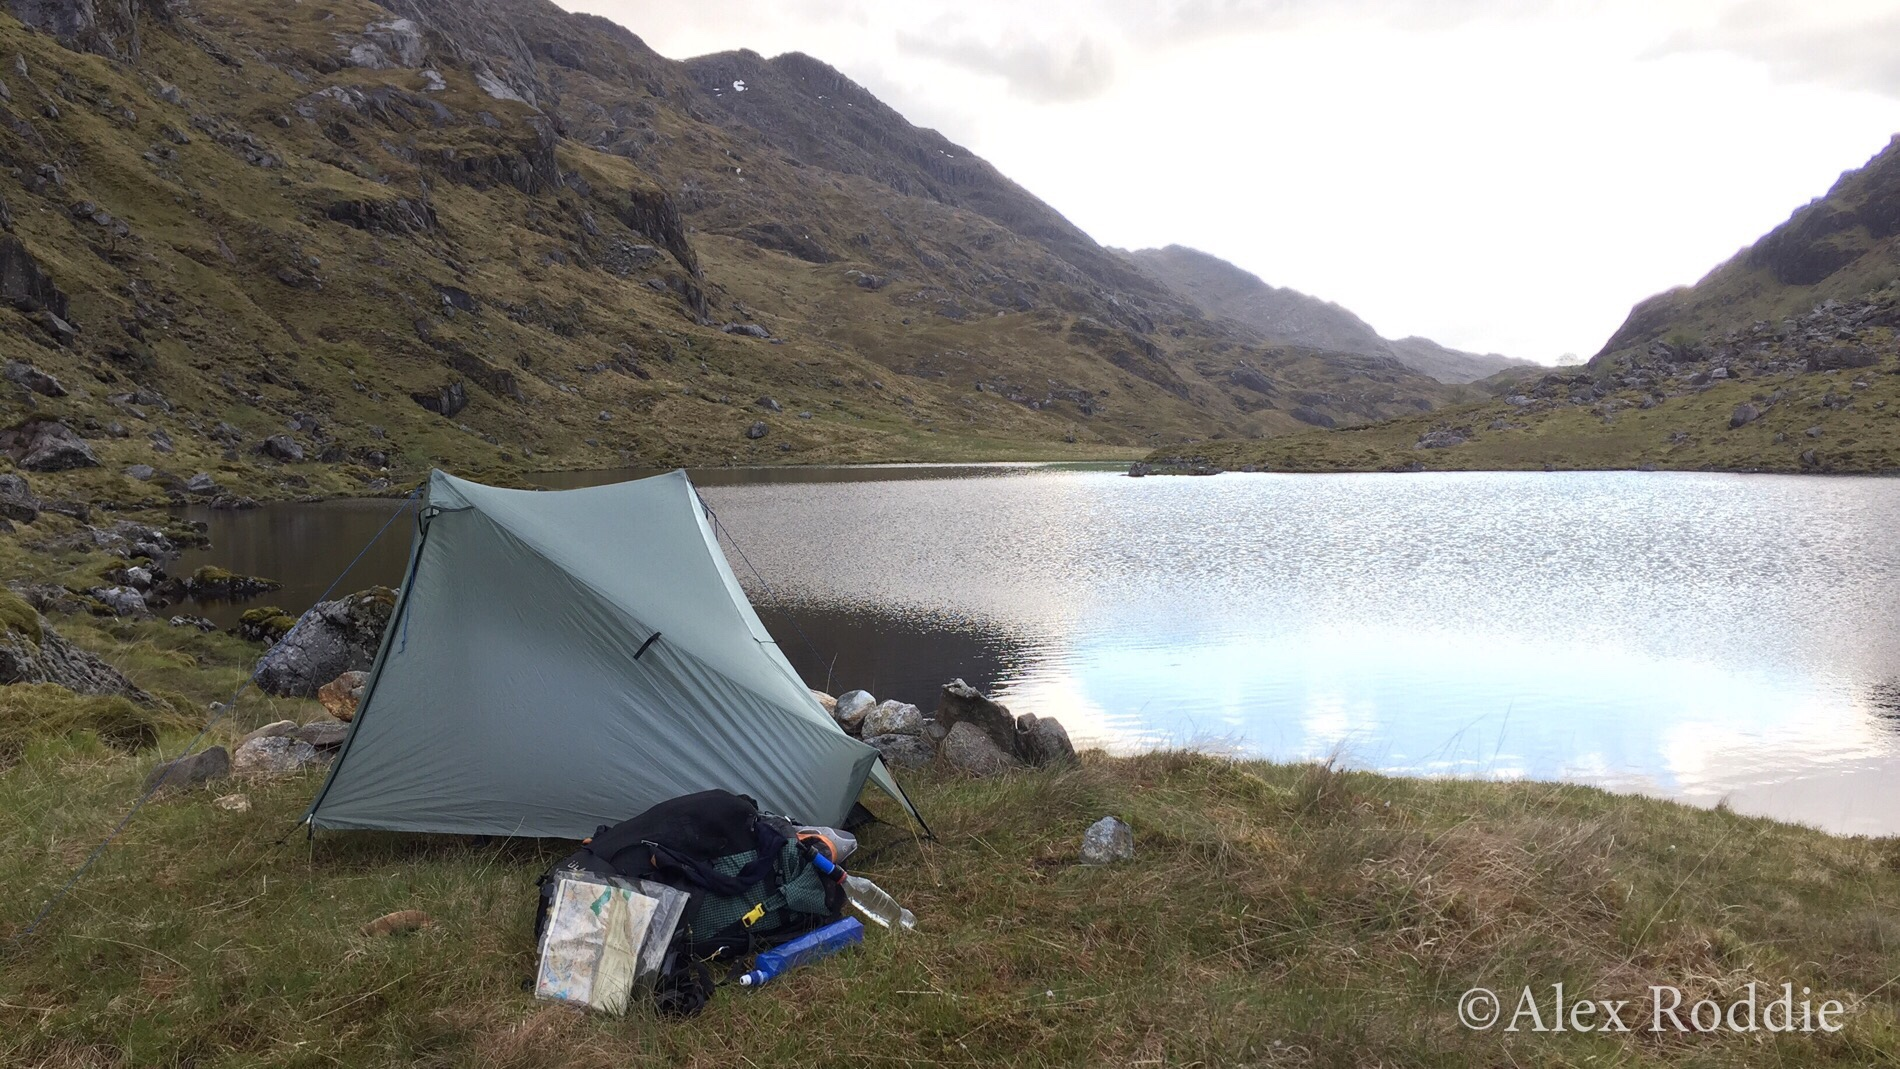 Alex's first wild camp at Lochan a'Mhaim, a few hours before the storm rolled in